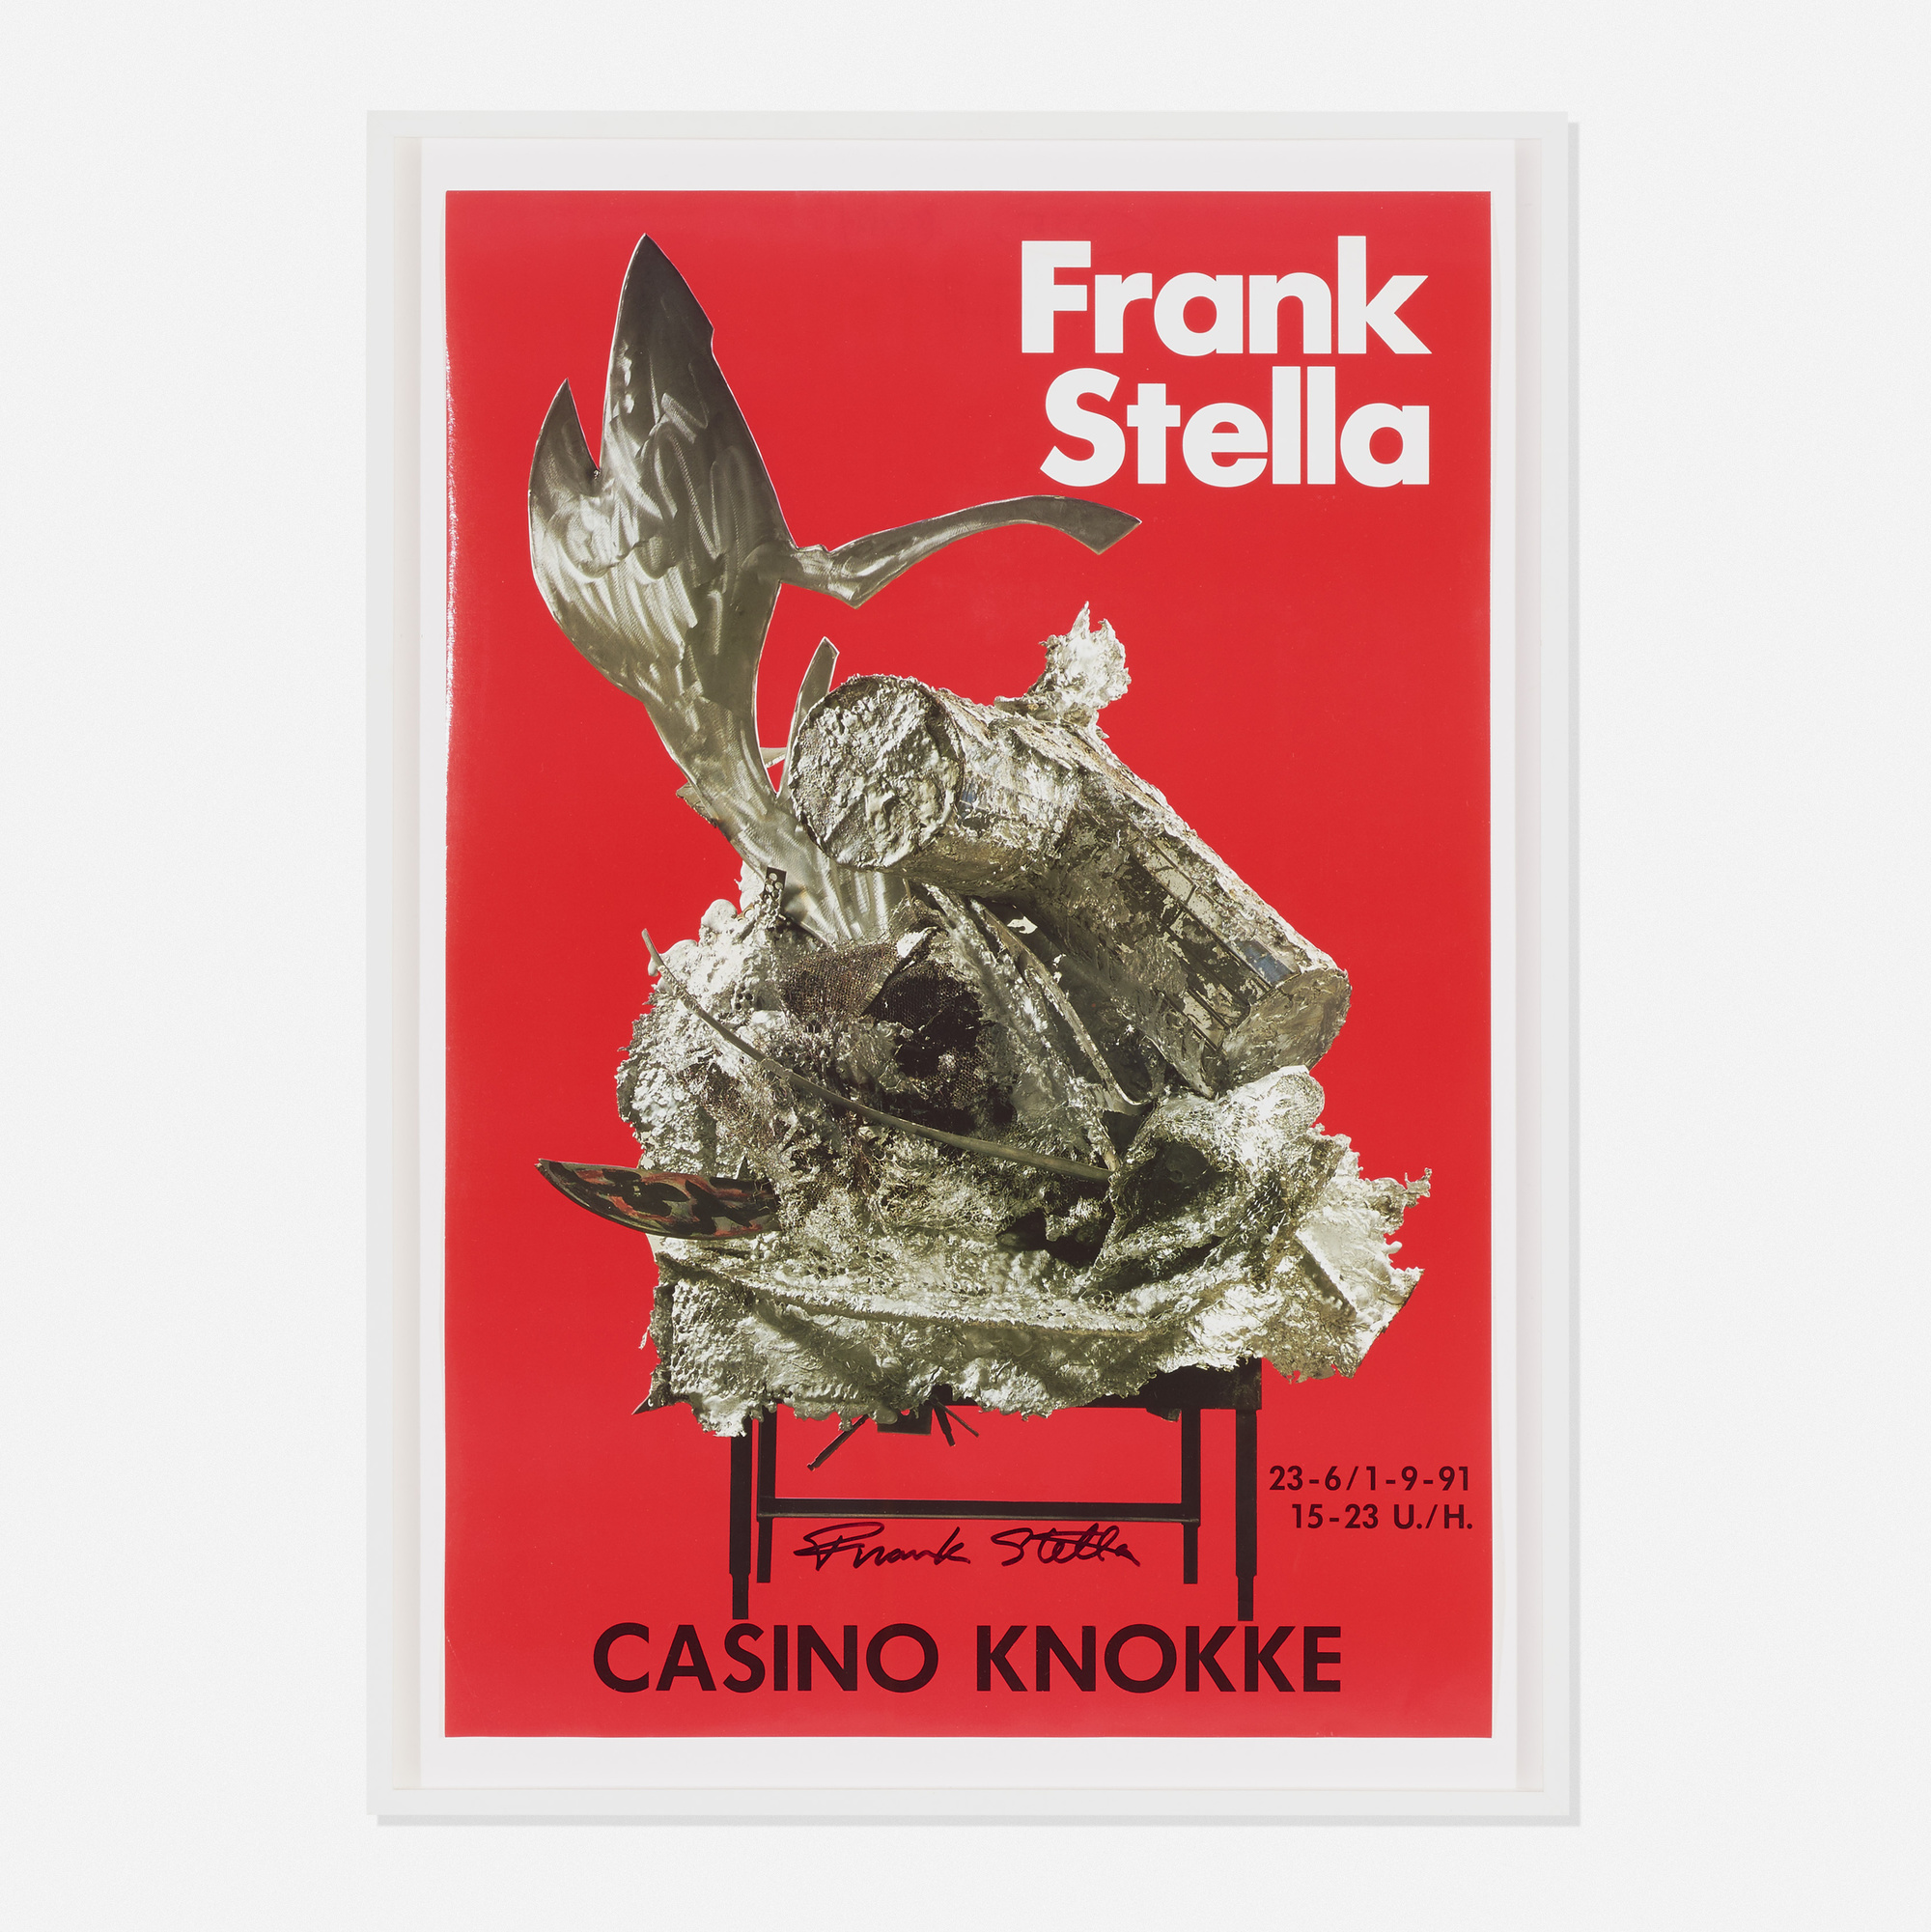 174: After Frank Stella / Untitled (poster for residences at the Knokke Casino, Belgium) (1 of 1)